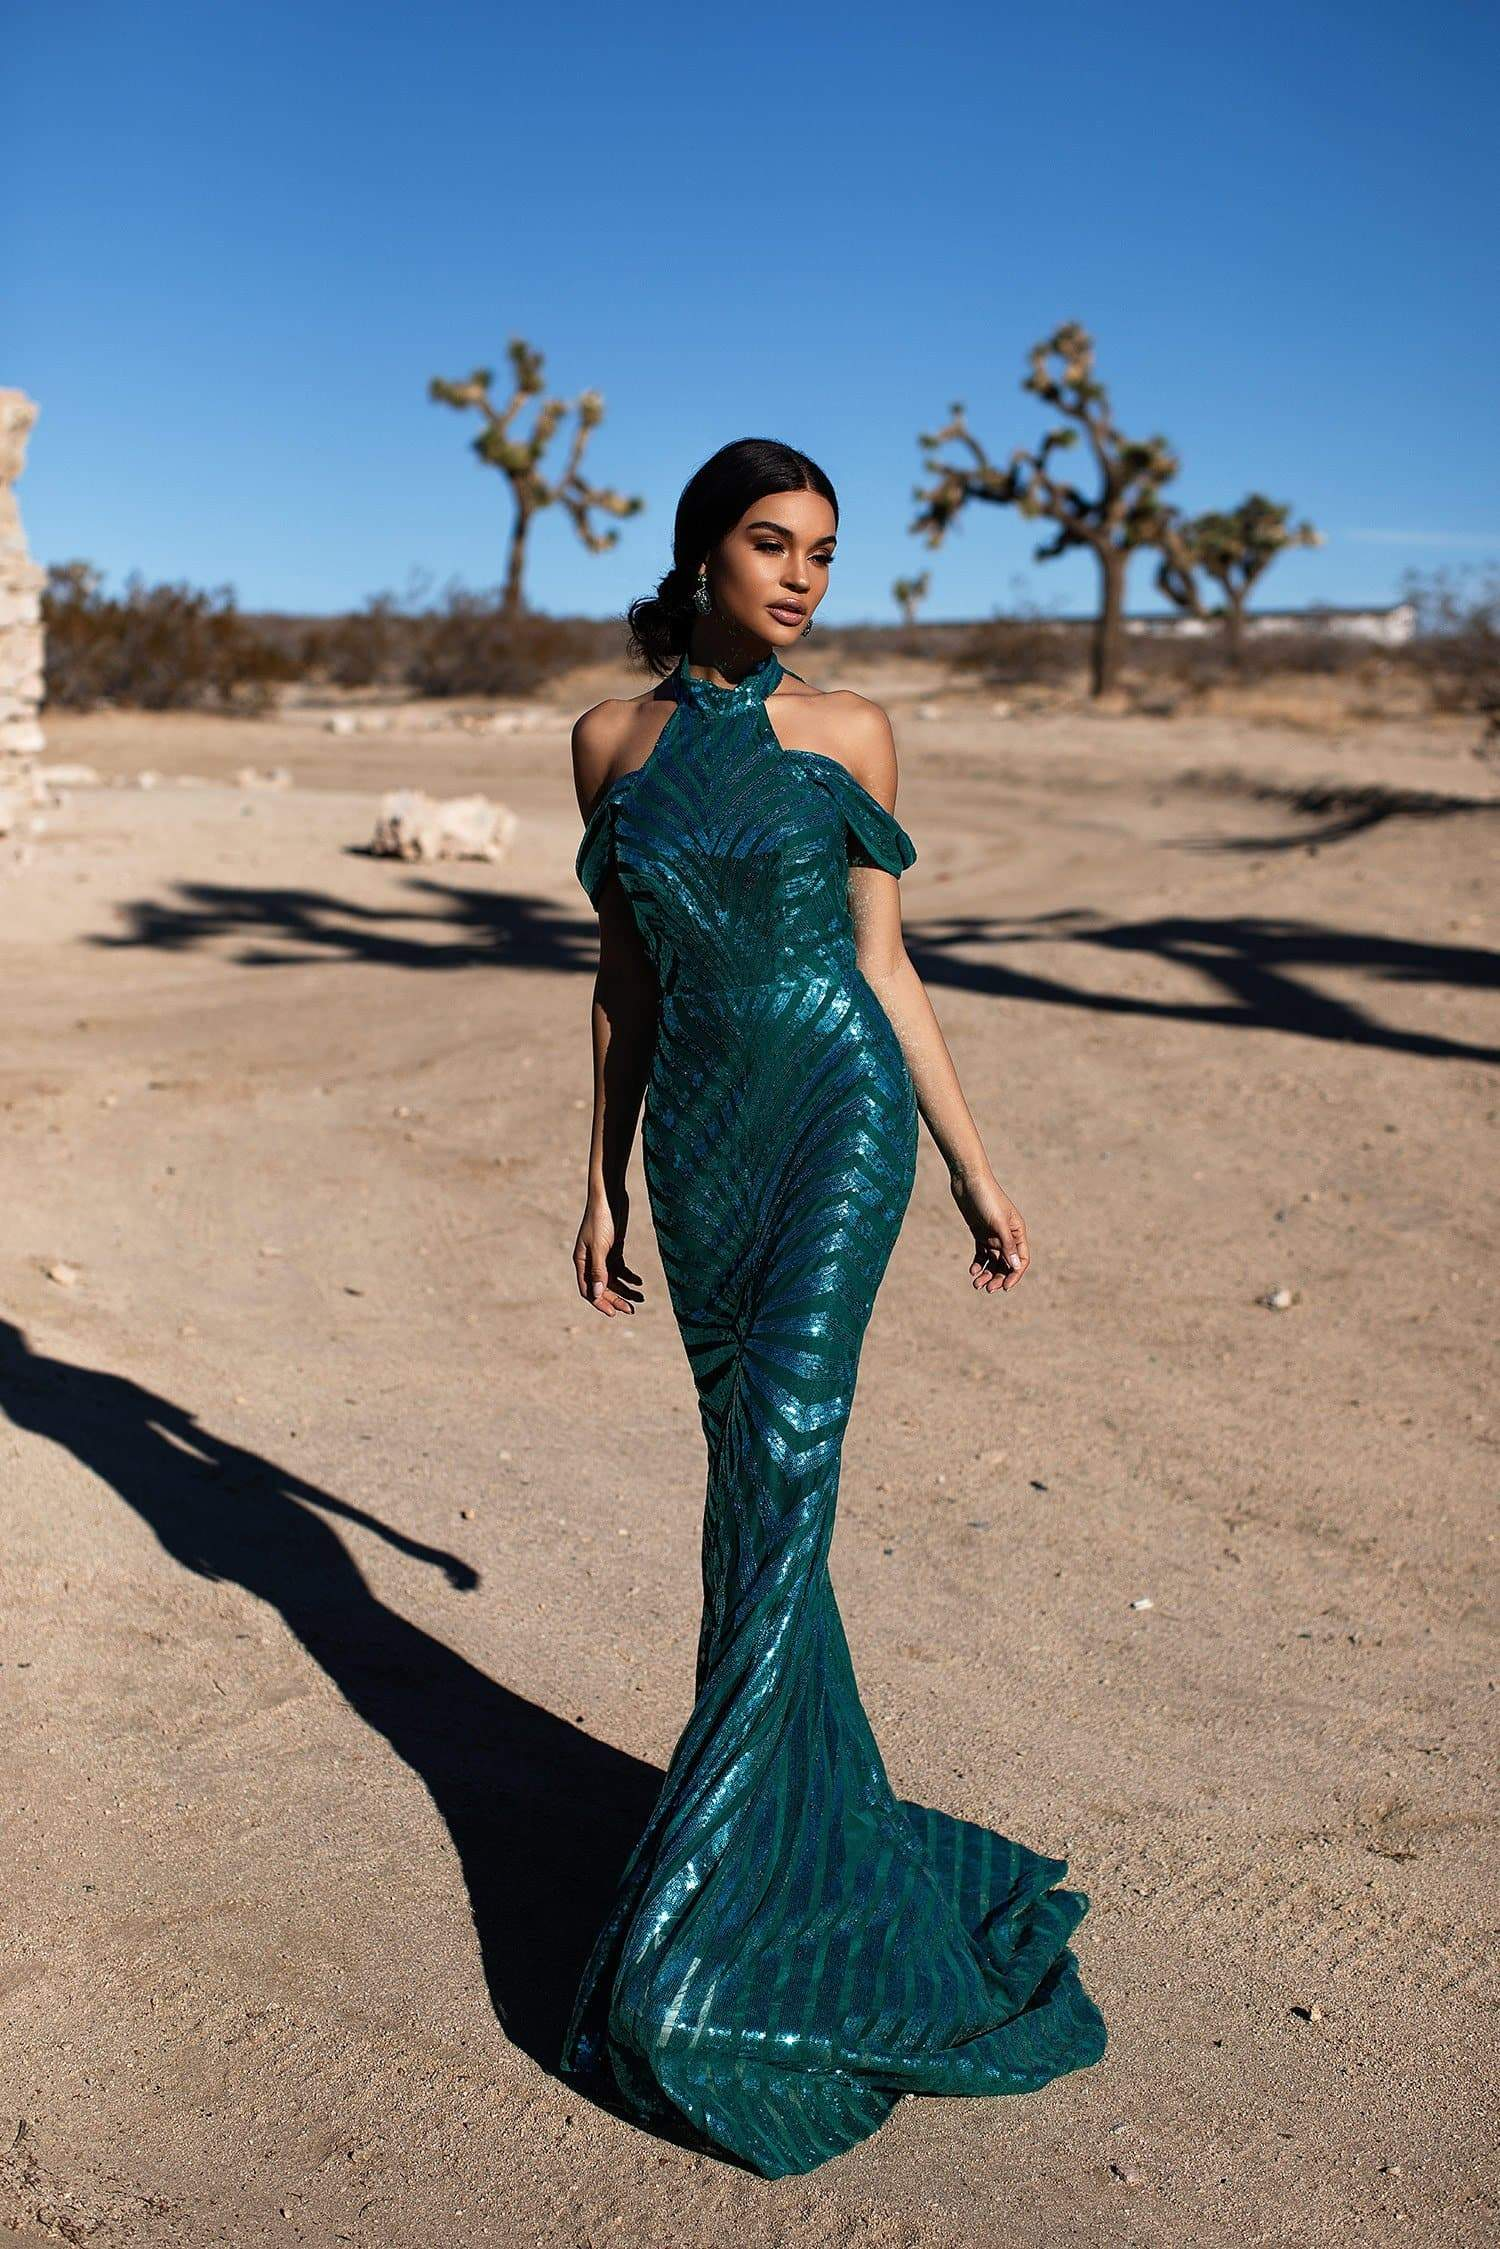 A&N Luxe Zella -Emerald Sequin Mermaid Gown With High Neck & Open Back